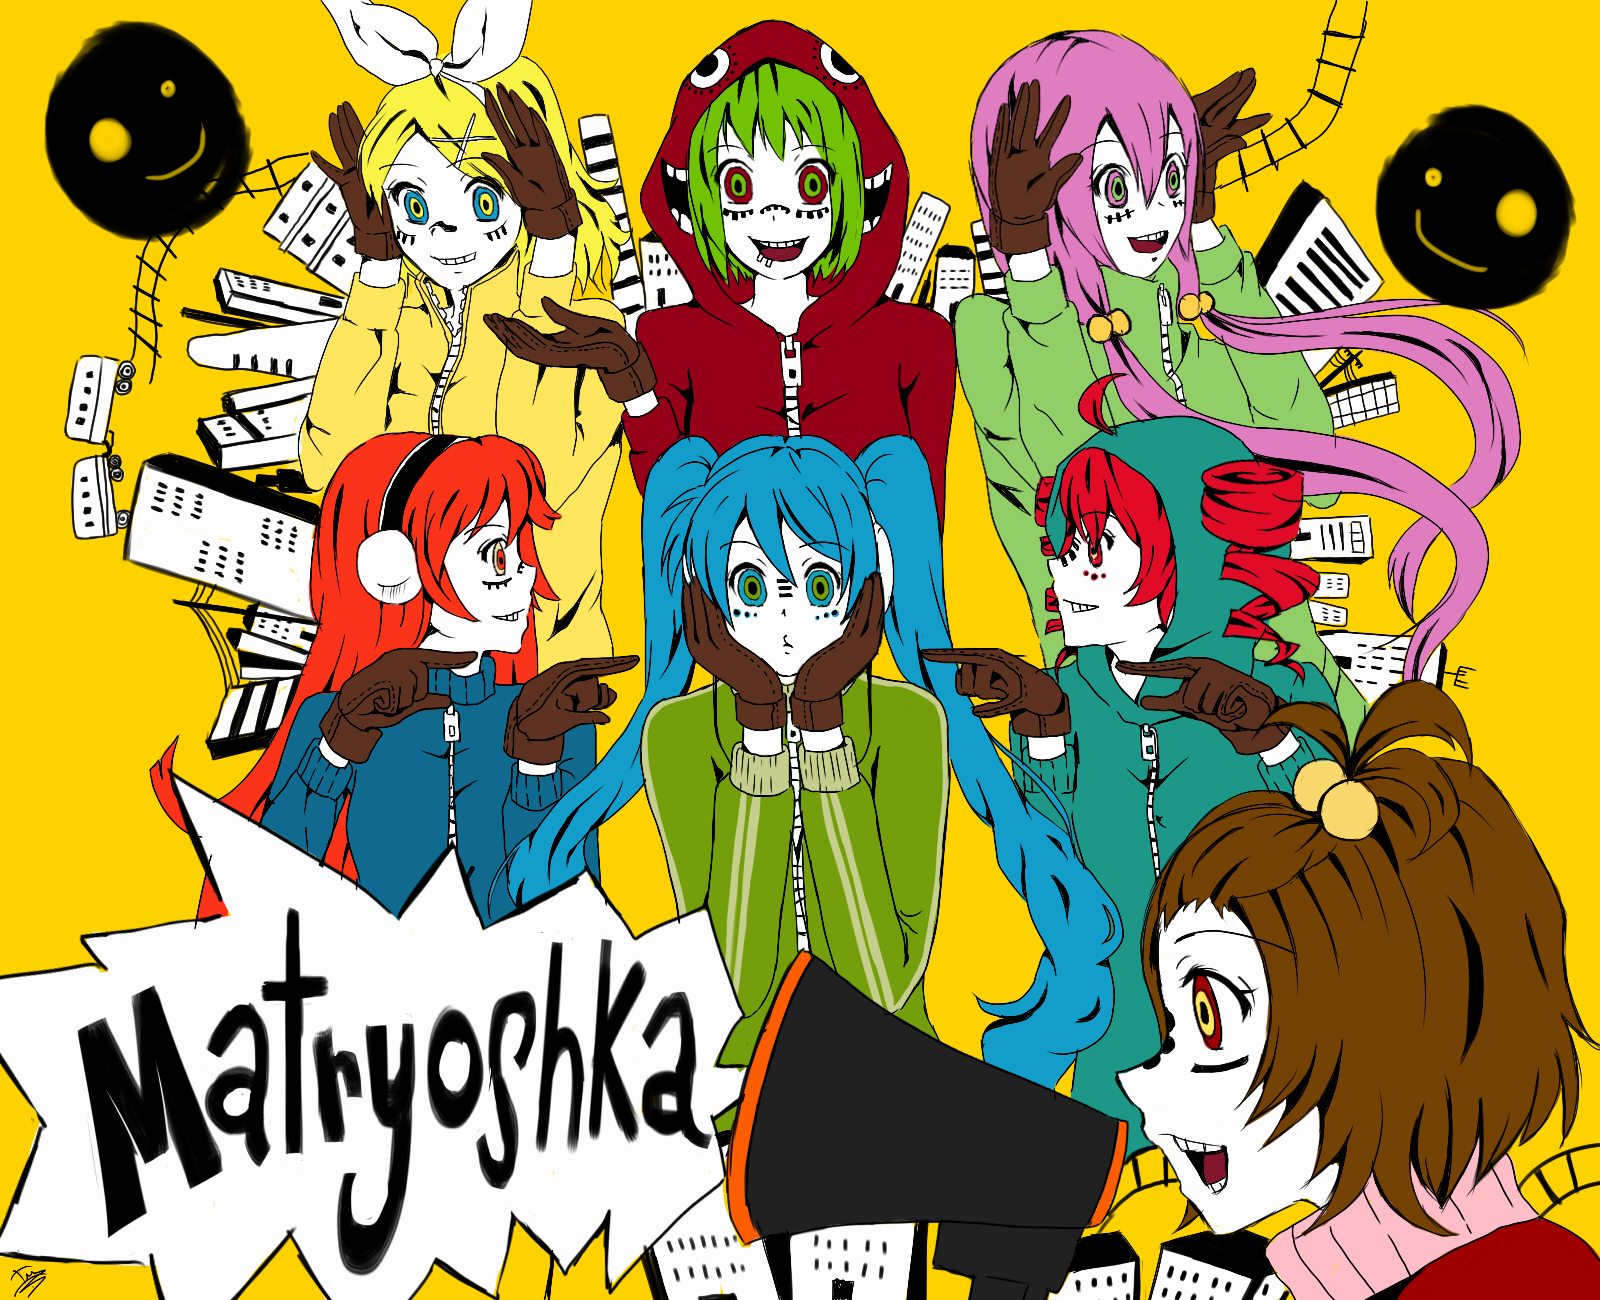 Vocaloid Matryoshka Face